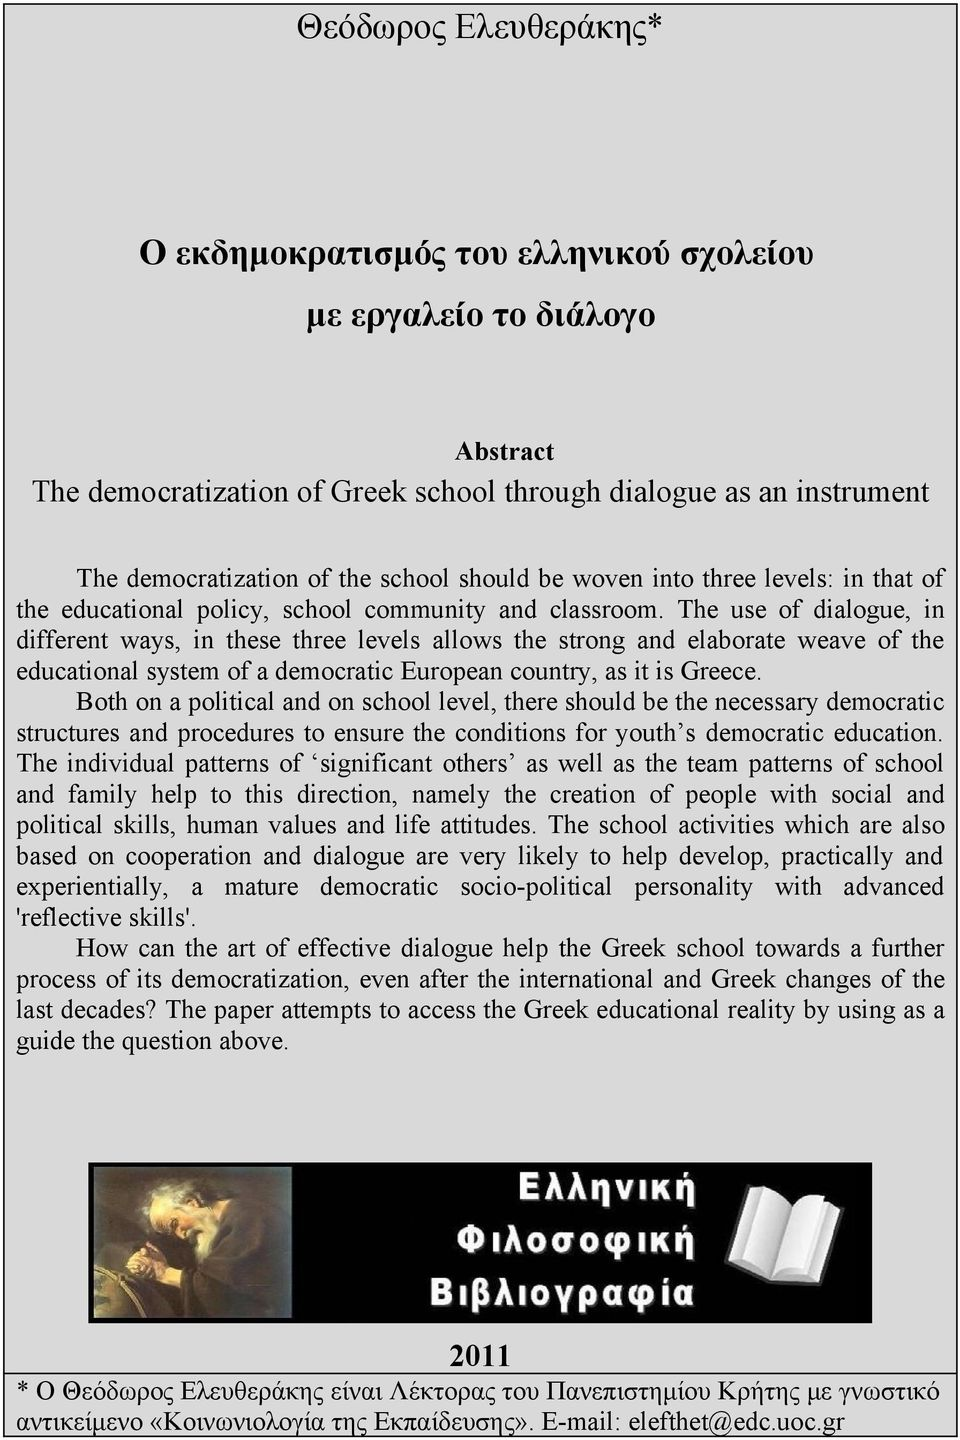 The use of dialogue, in different ways, in these three levels allows the strong and elaborate weave of the educational system of a democratic European country, as it is Greece.